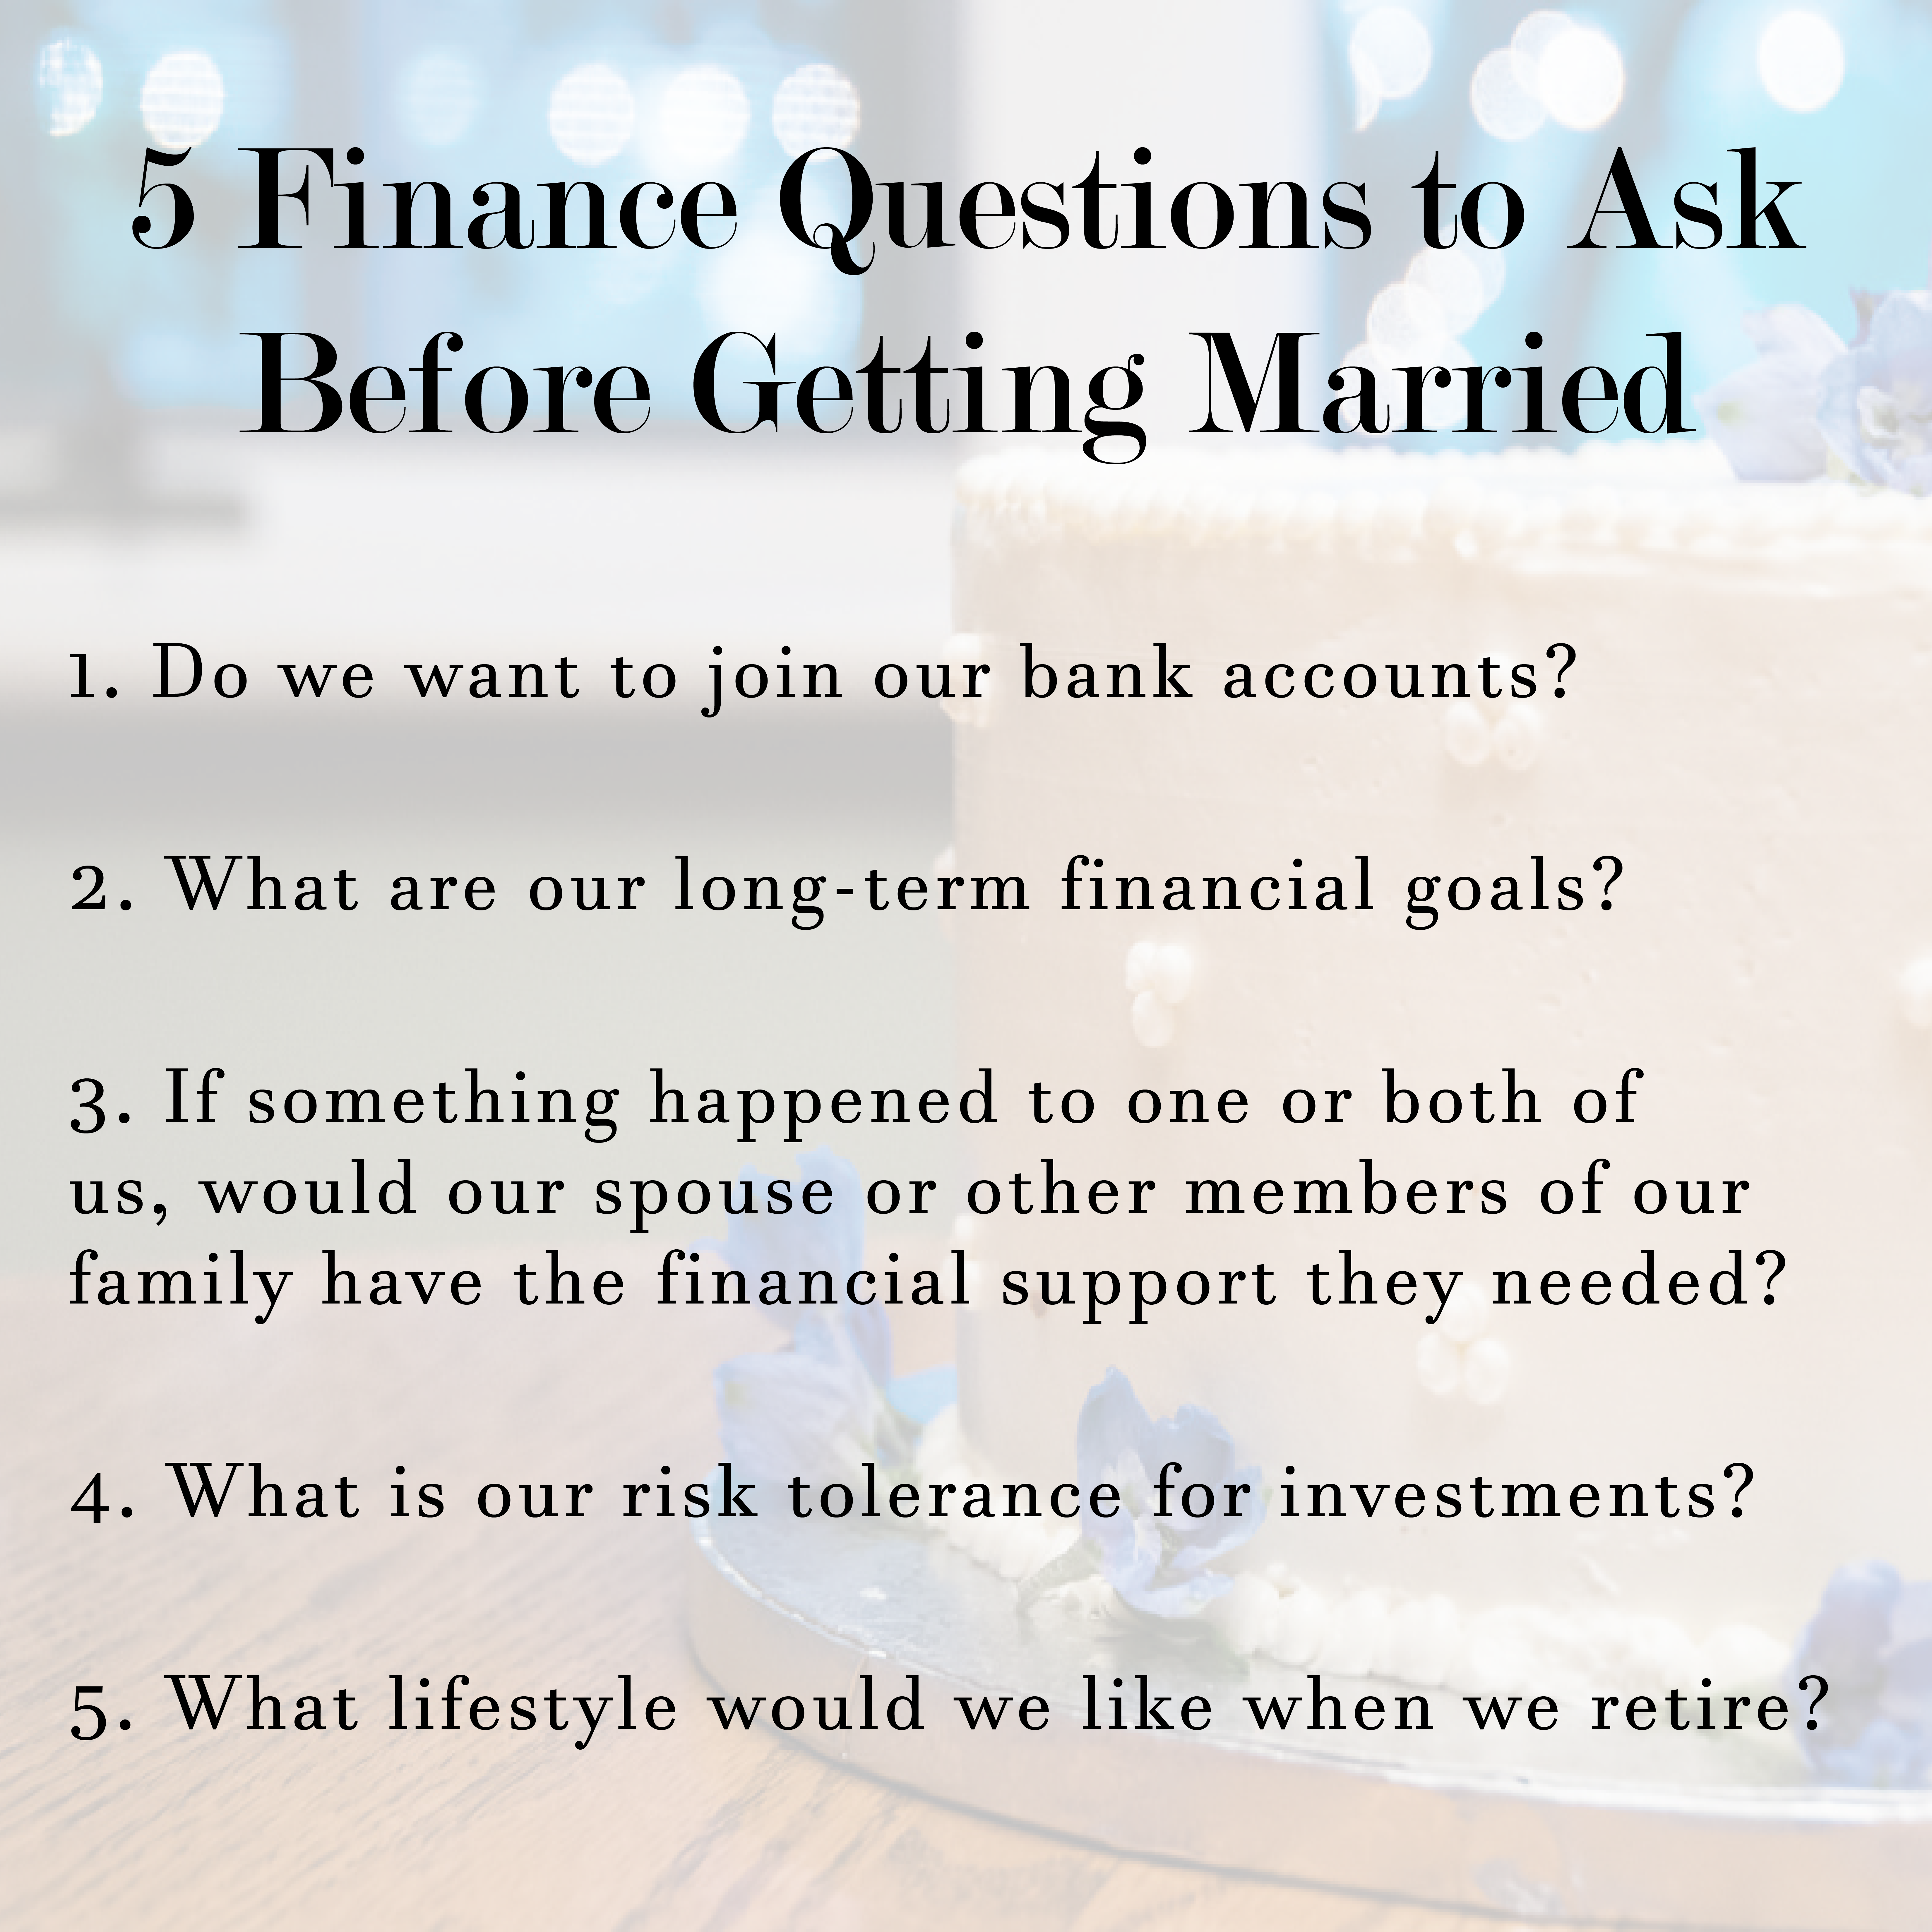 Getting married soon? Make sure to answer these 5